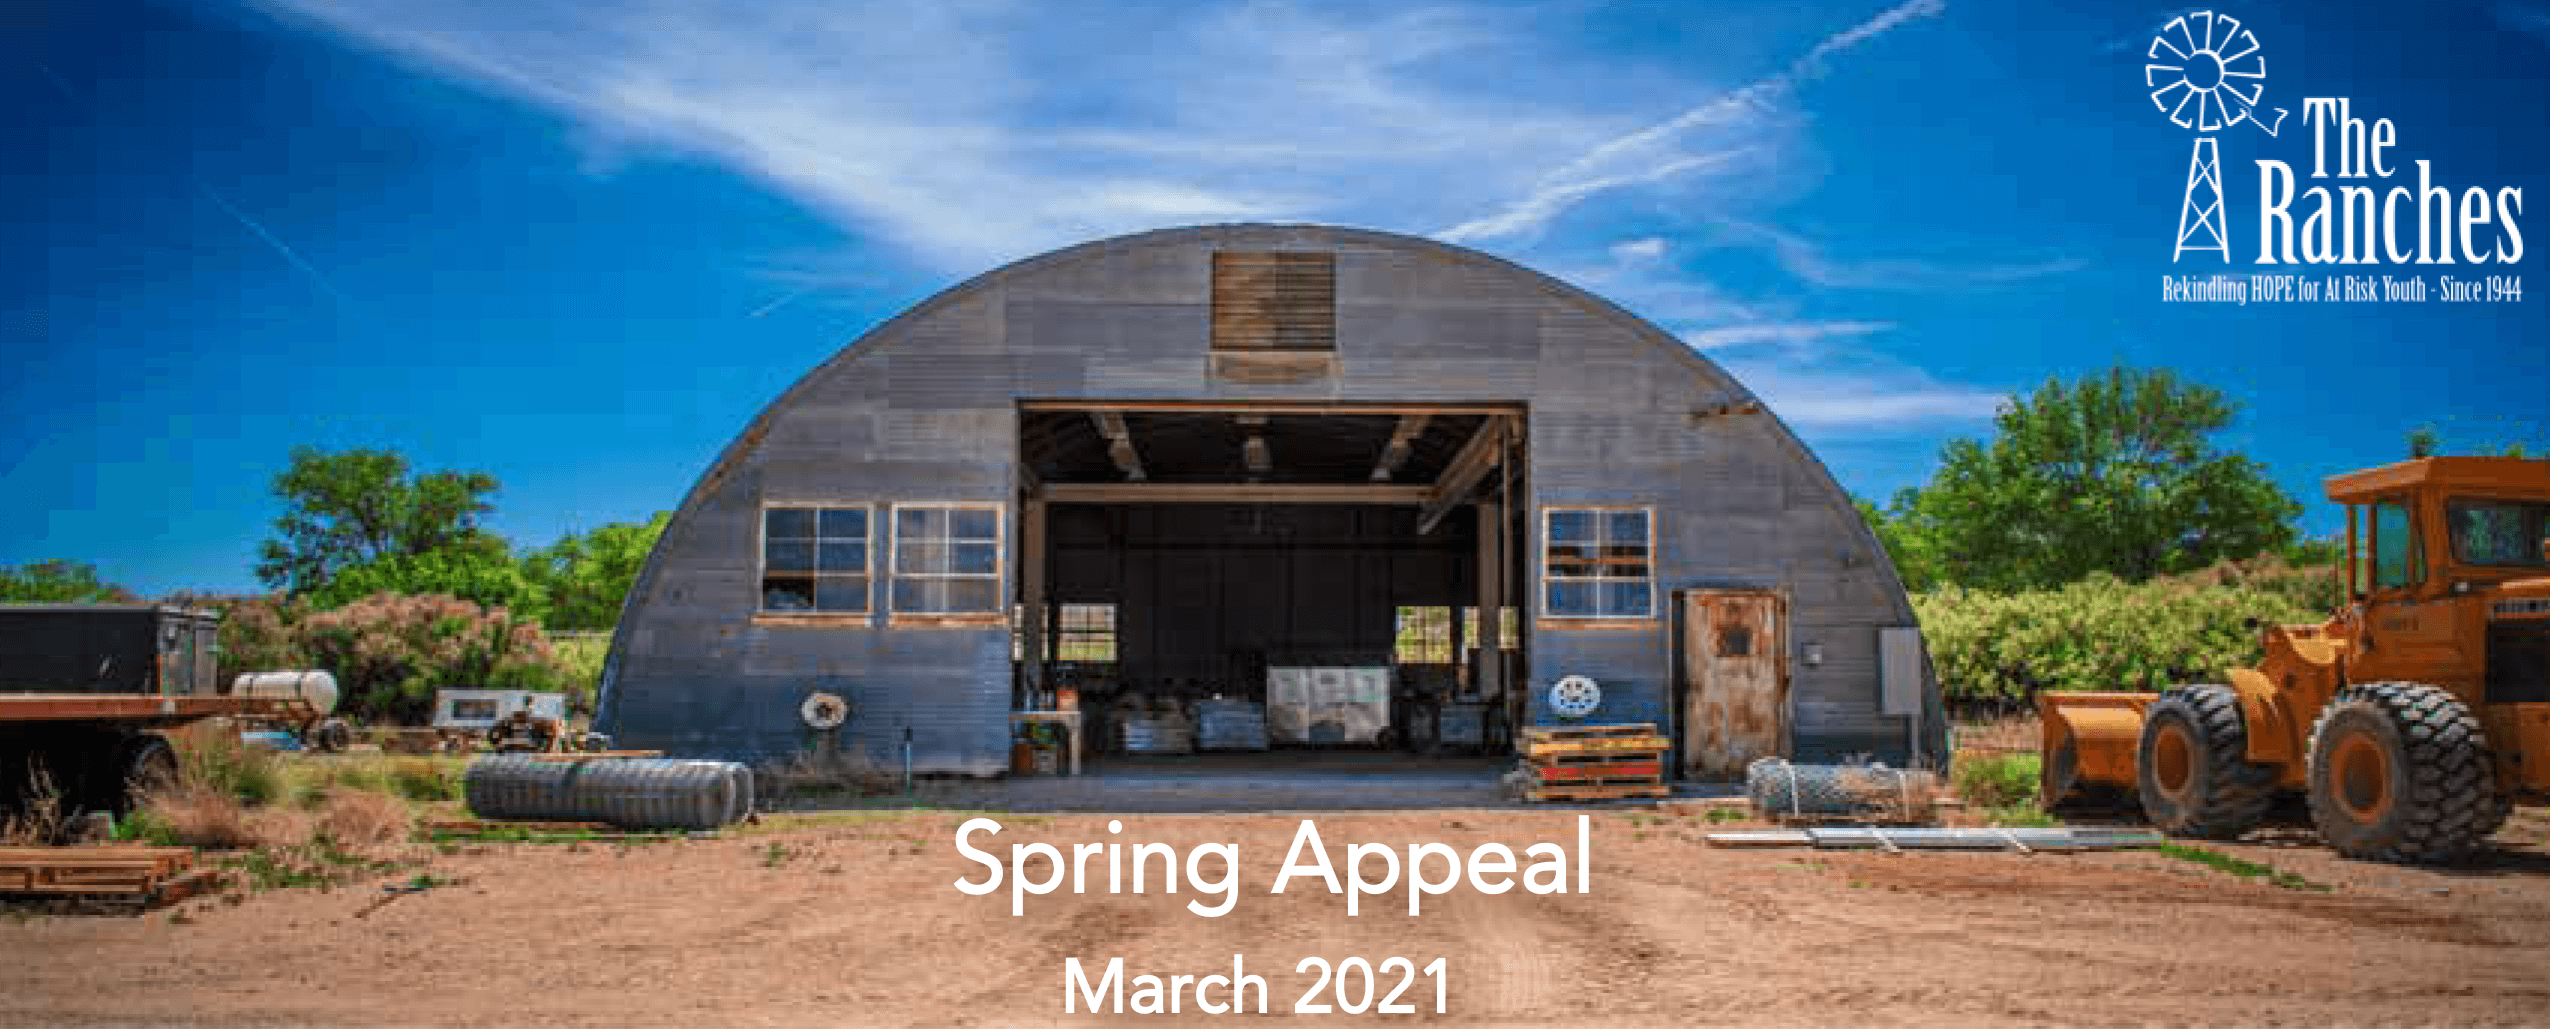 The Ranches - Spring Appeal 2021